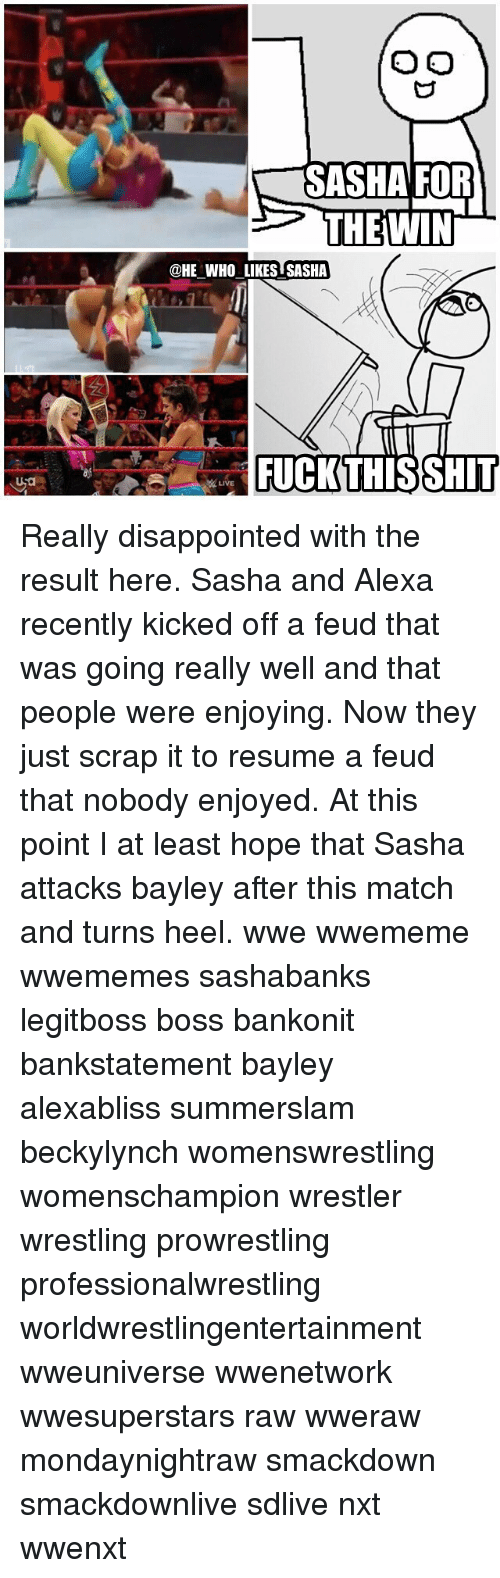 Bayley: SASHA FOR  THEWIN  @HE WHO LIKES SASHA  FUCKTHISSHIT  LIVE Really disappointed with the result here. Sasha and Alexa recently kicked off a feud that was going really well and that people were enjoying. Now they just scrap it to resume a feud that nobody enjoyed. At this point I at least hope that Sasha attacks bayley after this match and turns heel. wwe wwememe wwememes sashabanks legitboss boss bankonit bankstatement bayley alexabliss summerslam beckylynch womenswrestling womenschampion wrestler wrestling prowrestling professionalwrestling worldwrestlingentertainment wweuniverse wwenetwork wwesuperstars raw wweraw mondaynightraw smackdown smackdownlive sdlive nxt wwenxt